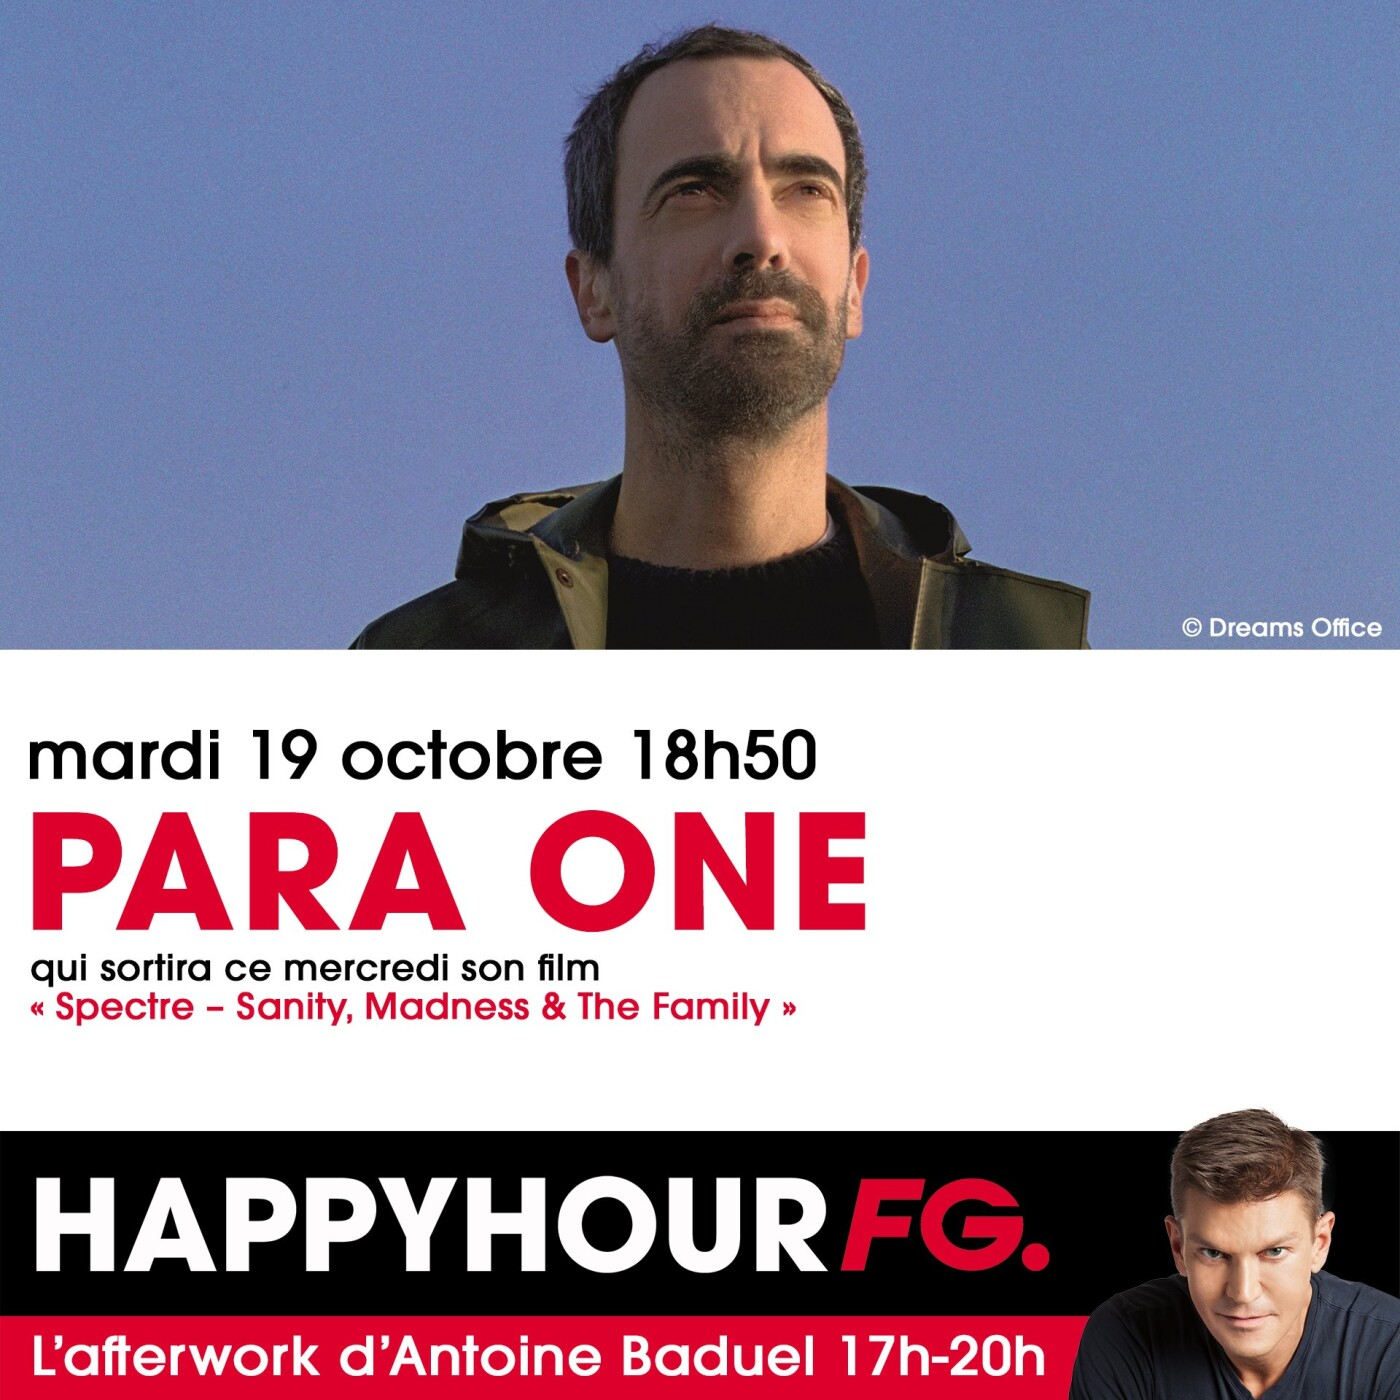 HAPPY HOUR INTERVIEW : PARA ONE